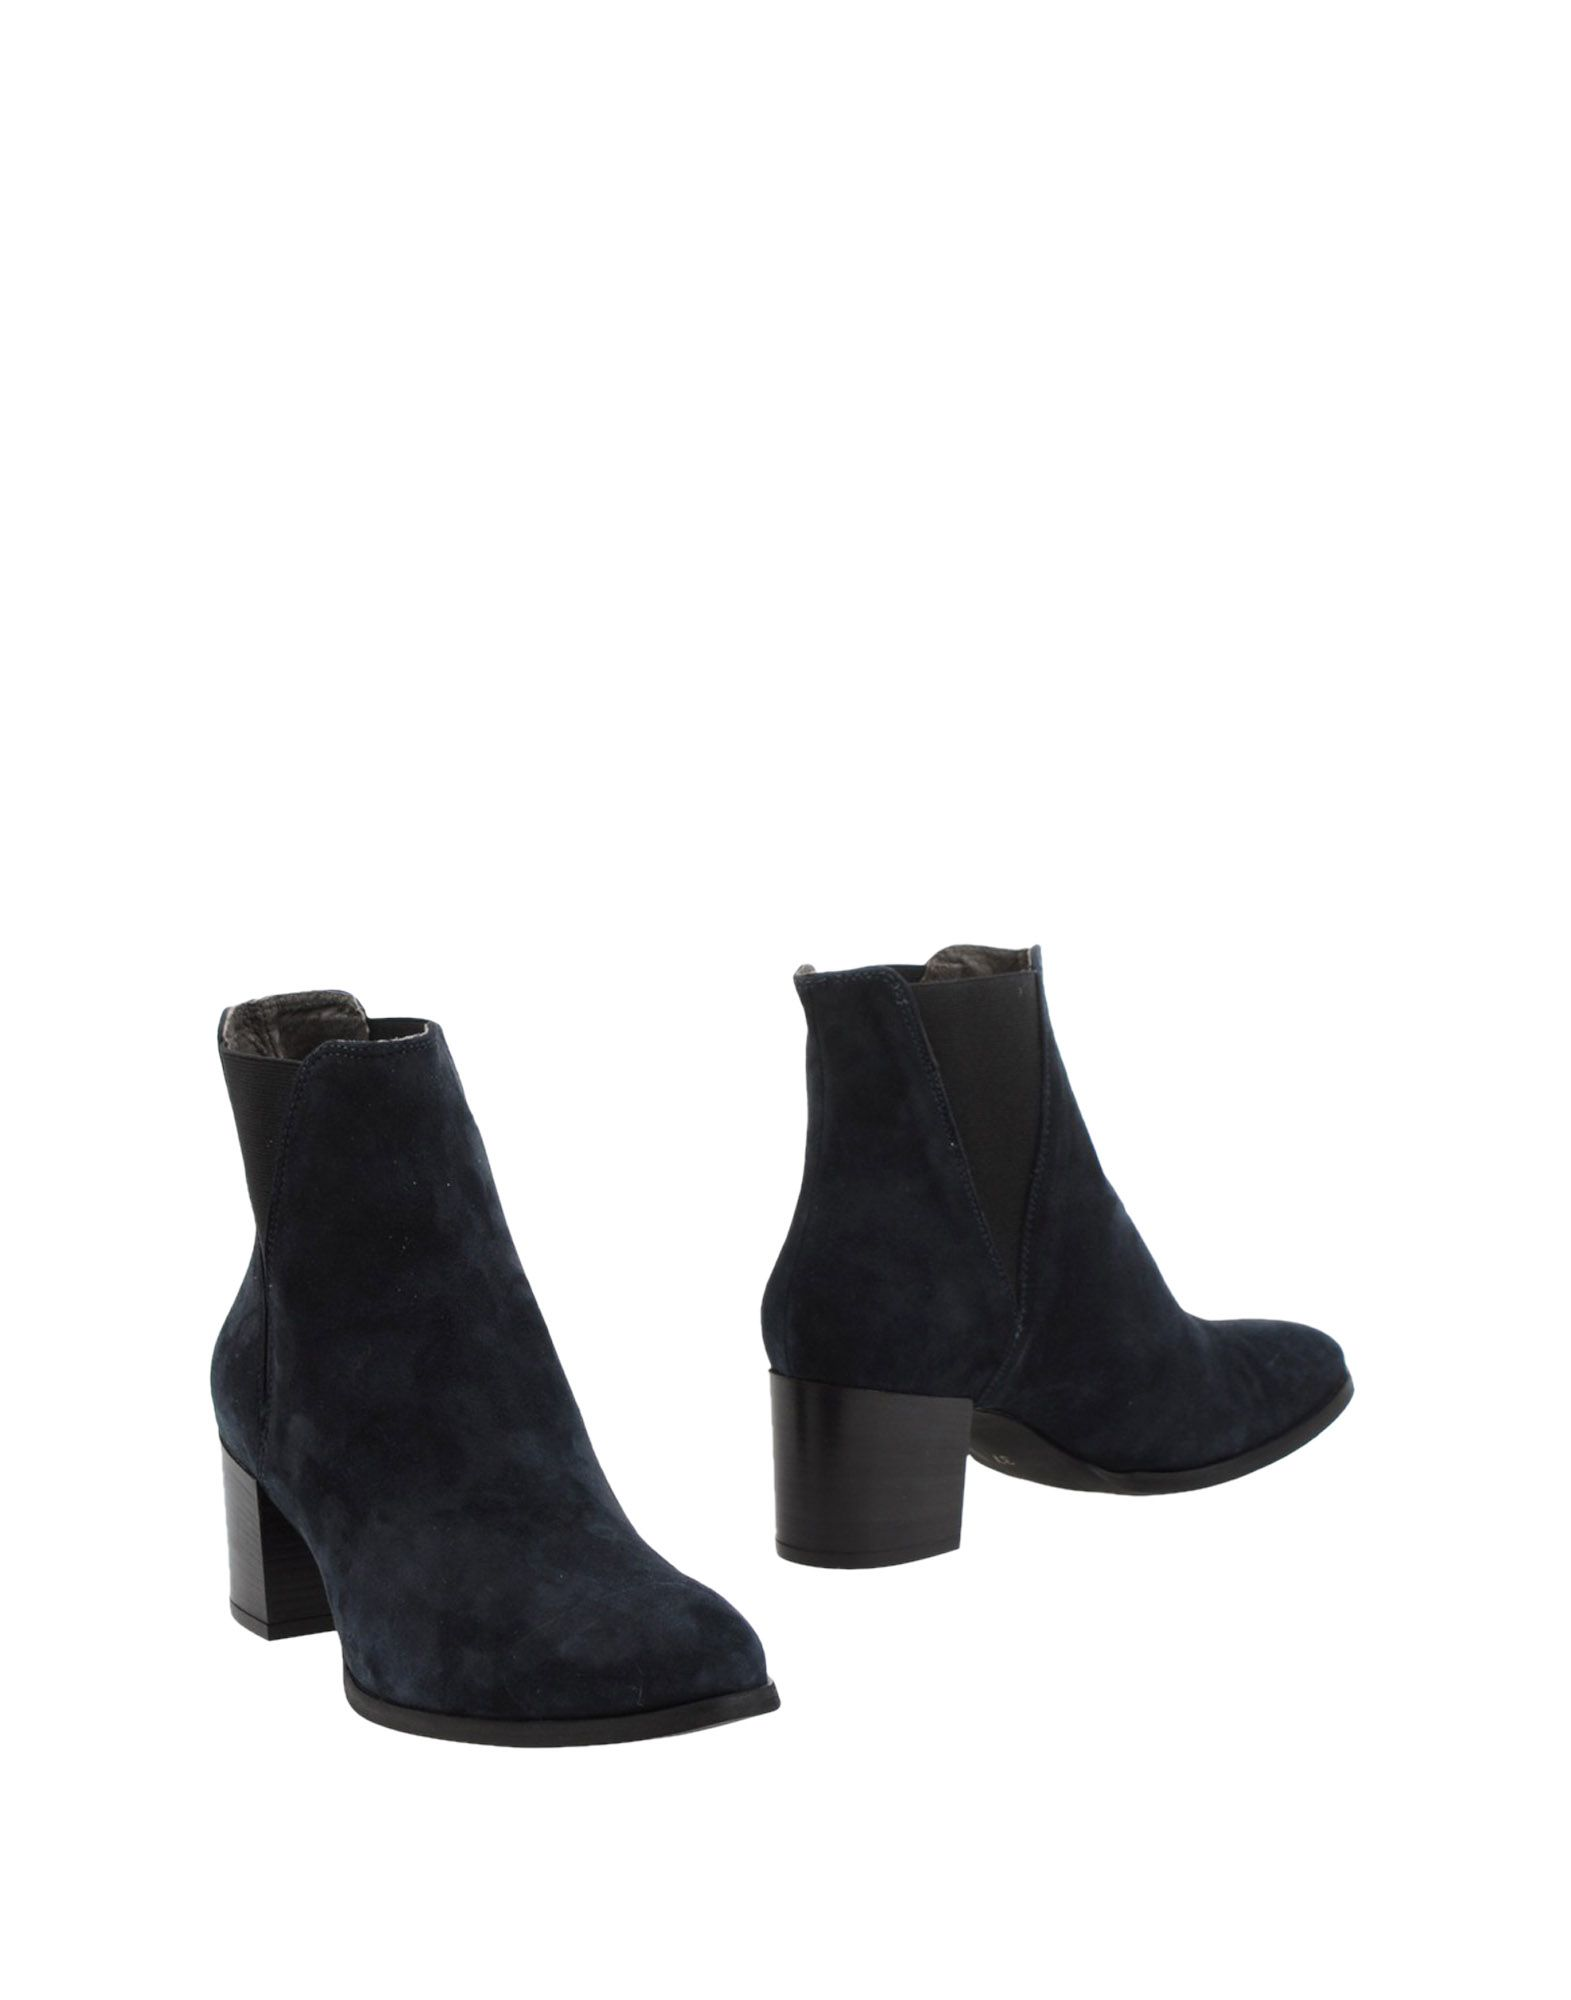 Chelsea Boots Paola Ferri Donna 11228630OL - 11228630OL Donna 0a7c45